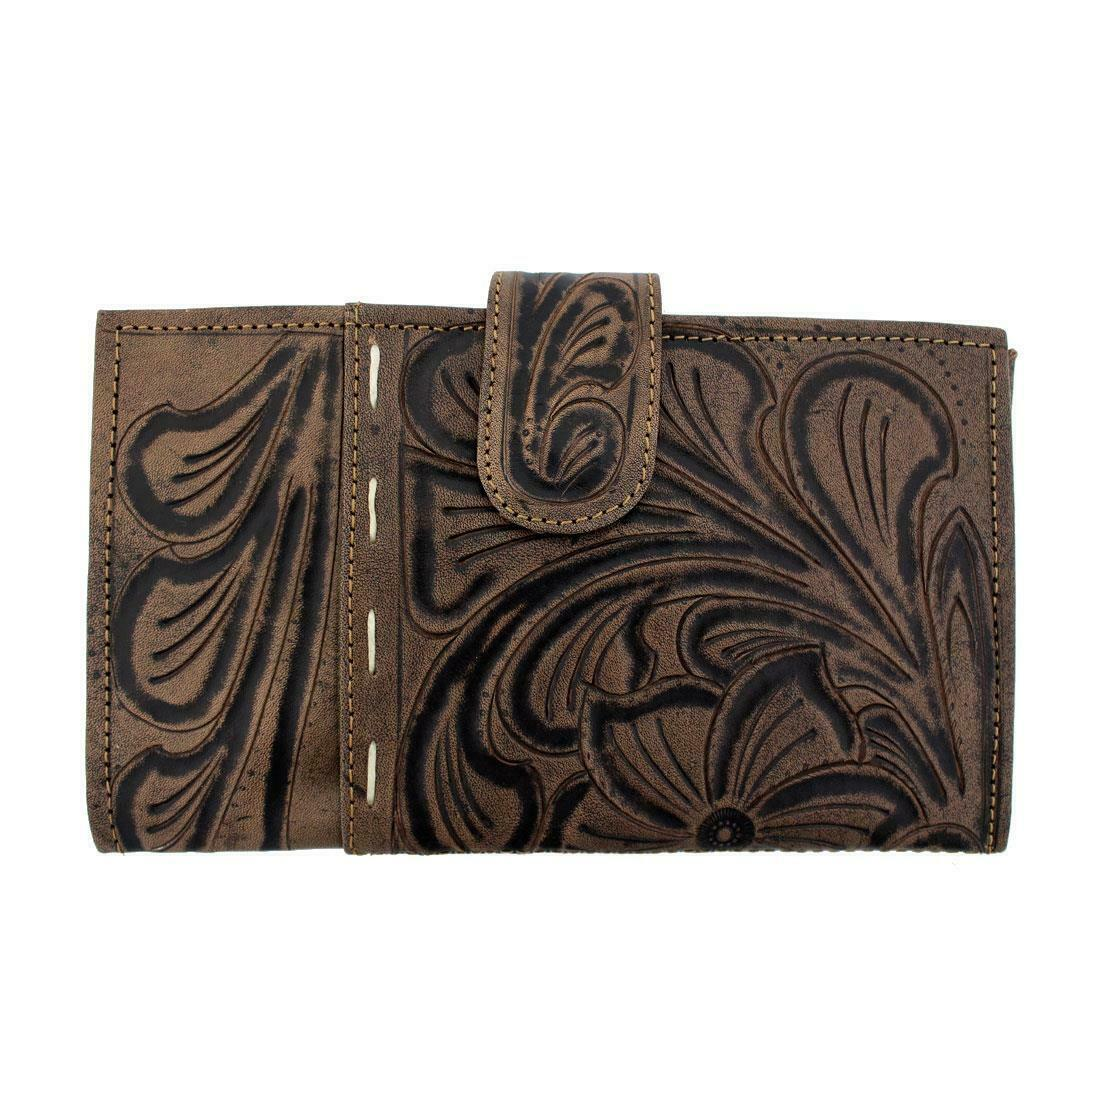 Leaders In Leather Hand Made Women's Wallet Handtooled Wild Flower Design